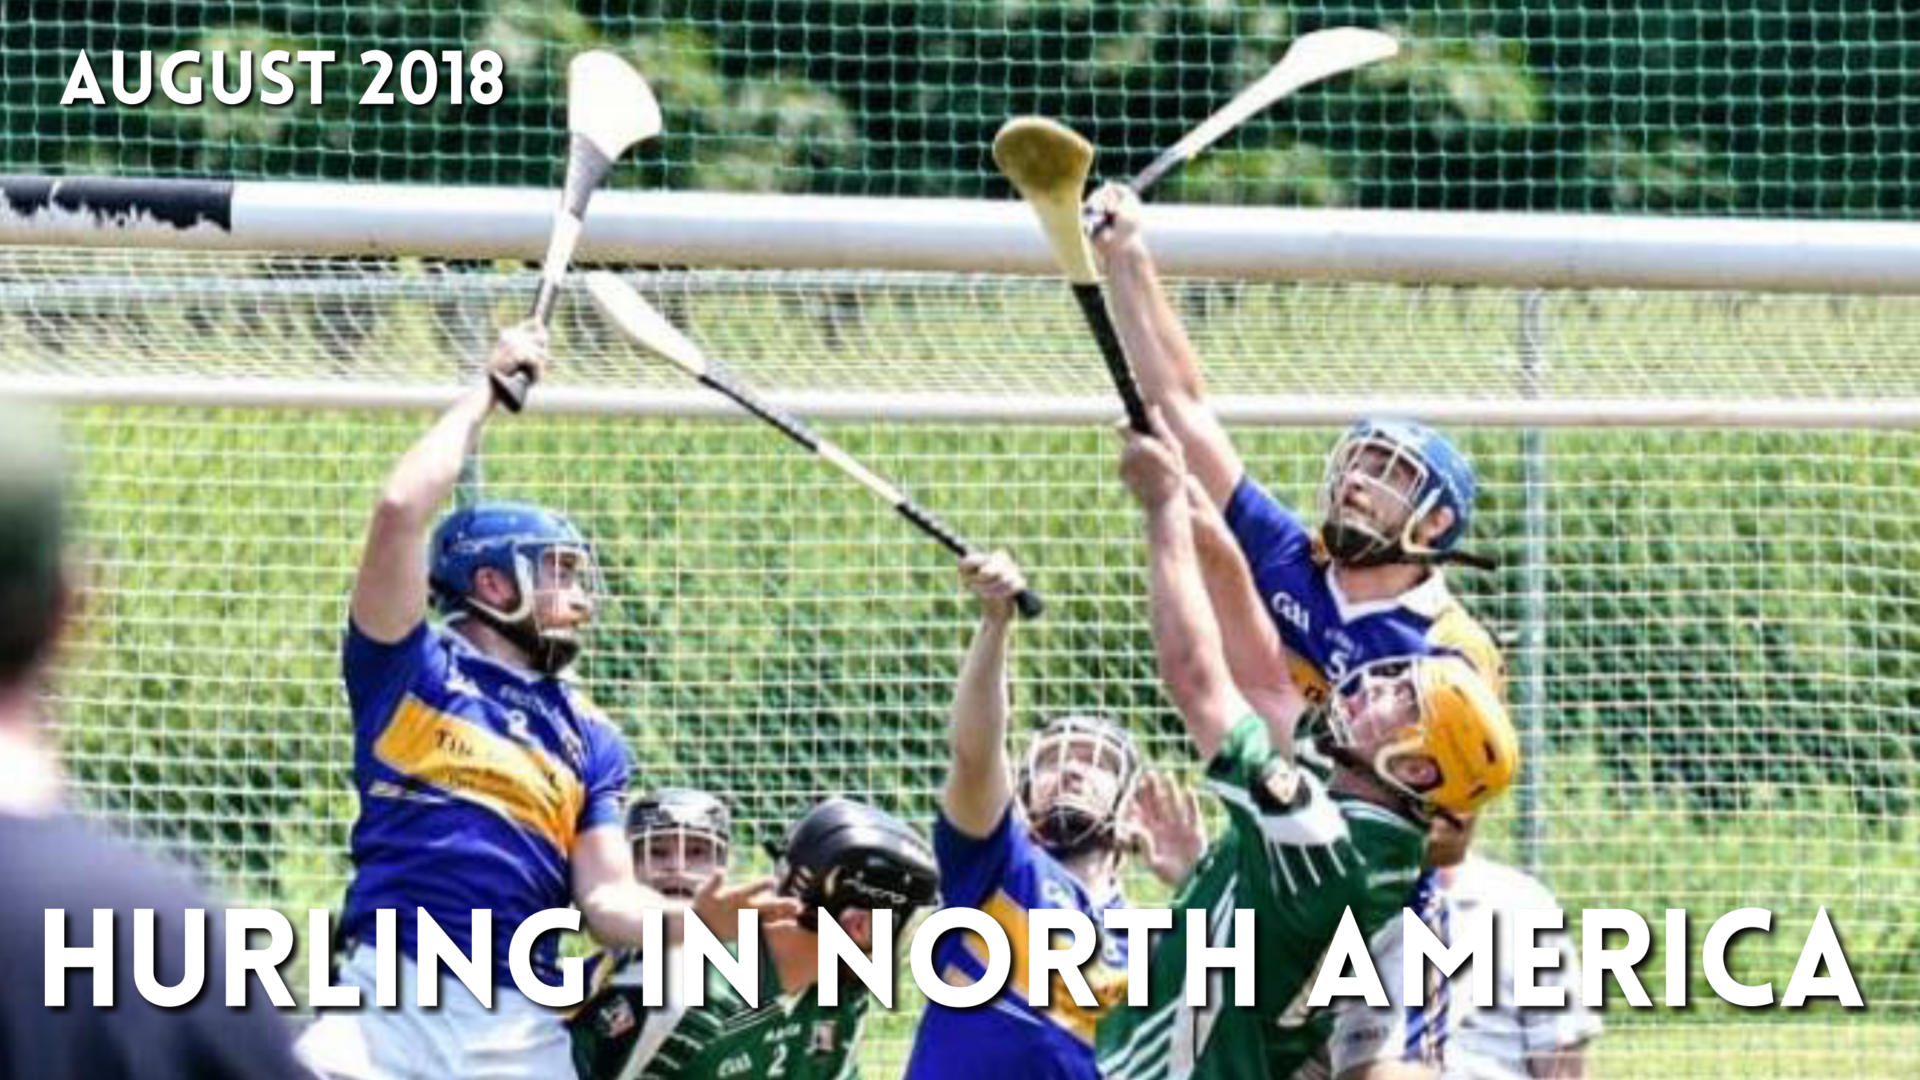 Hurling in North America News | August 2018